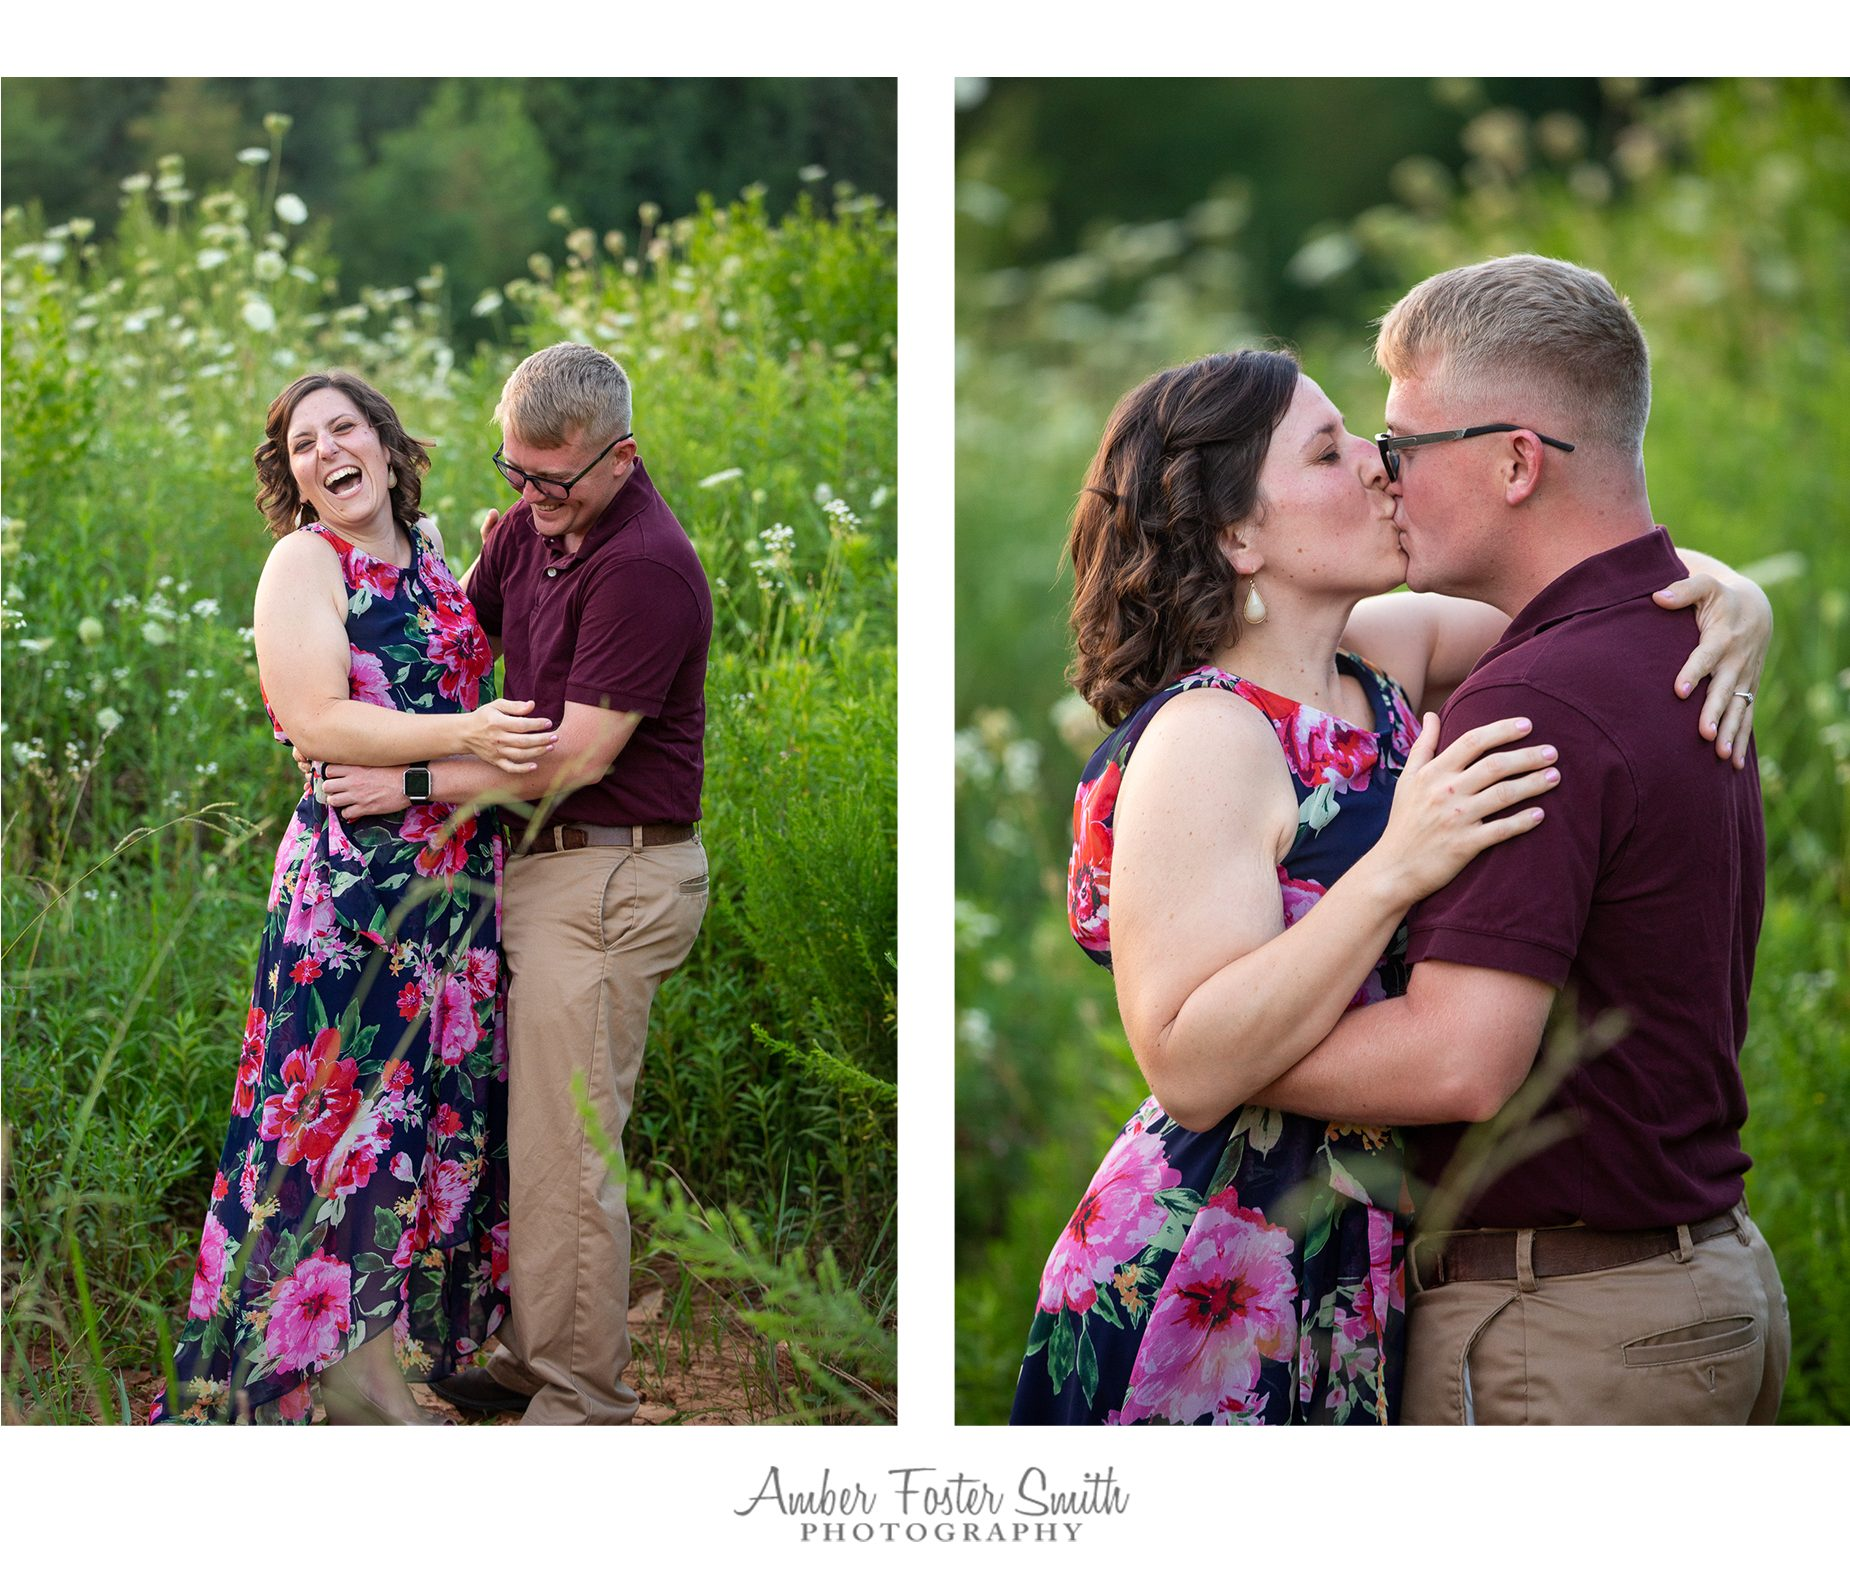 Amber Foster Smith Photography - Holly Springs Engagement Photographer